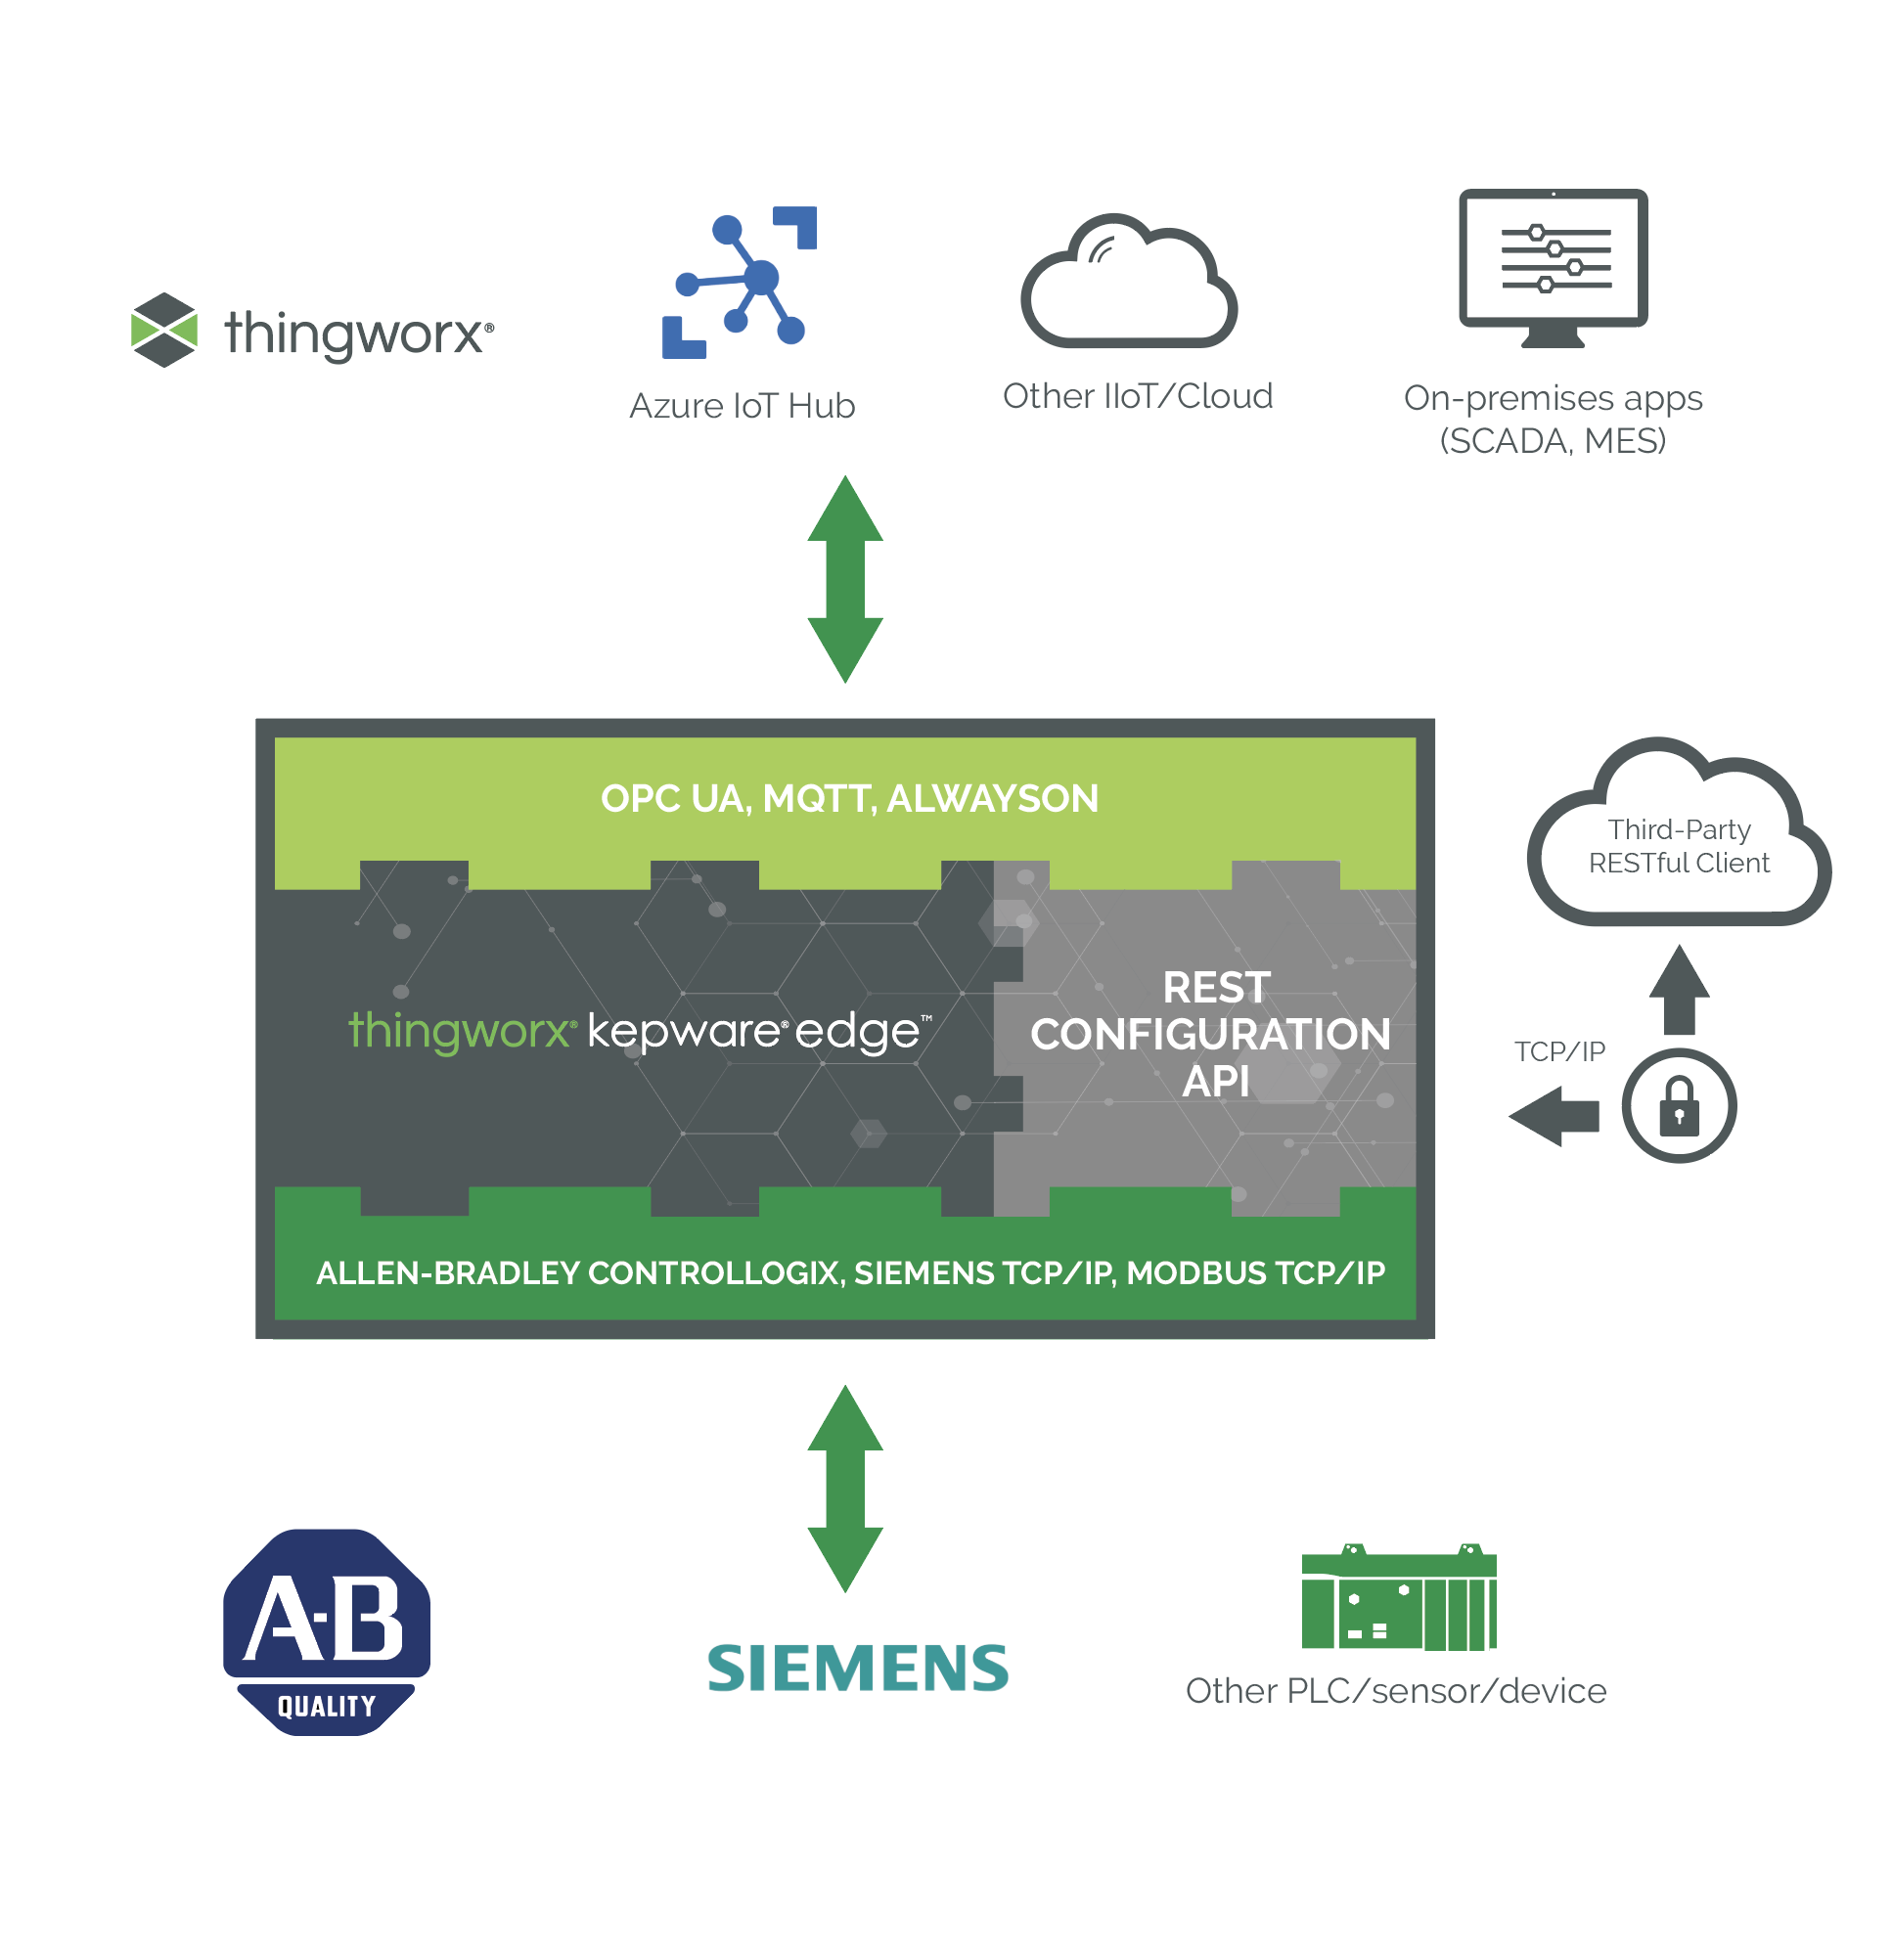 thingworx-kepware-edge-parallel-graphic